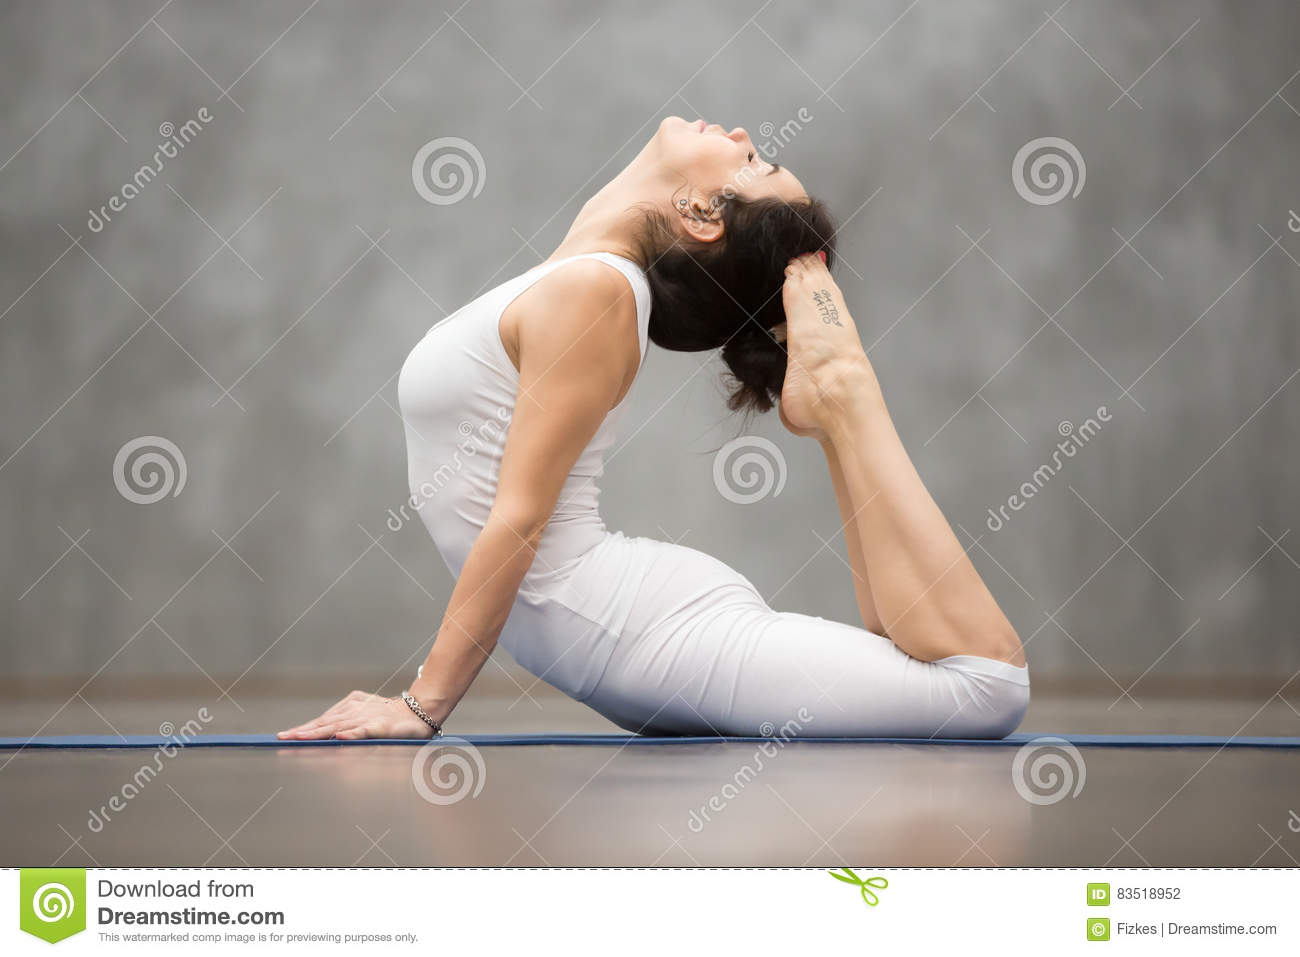 Beautiful Yoga Royal Cobra Pose Stock Photo Image Of Background Gymnastics 83518952